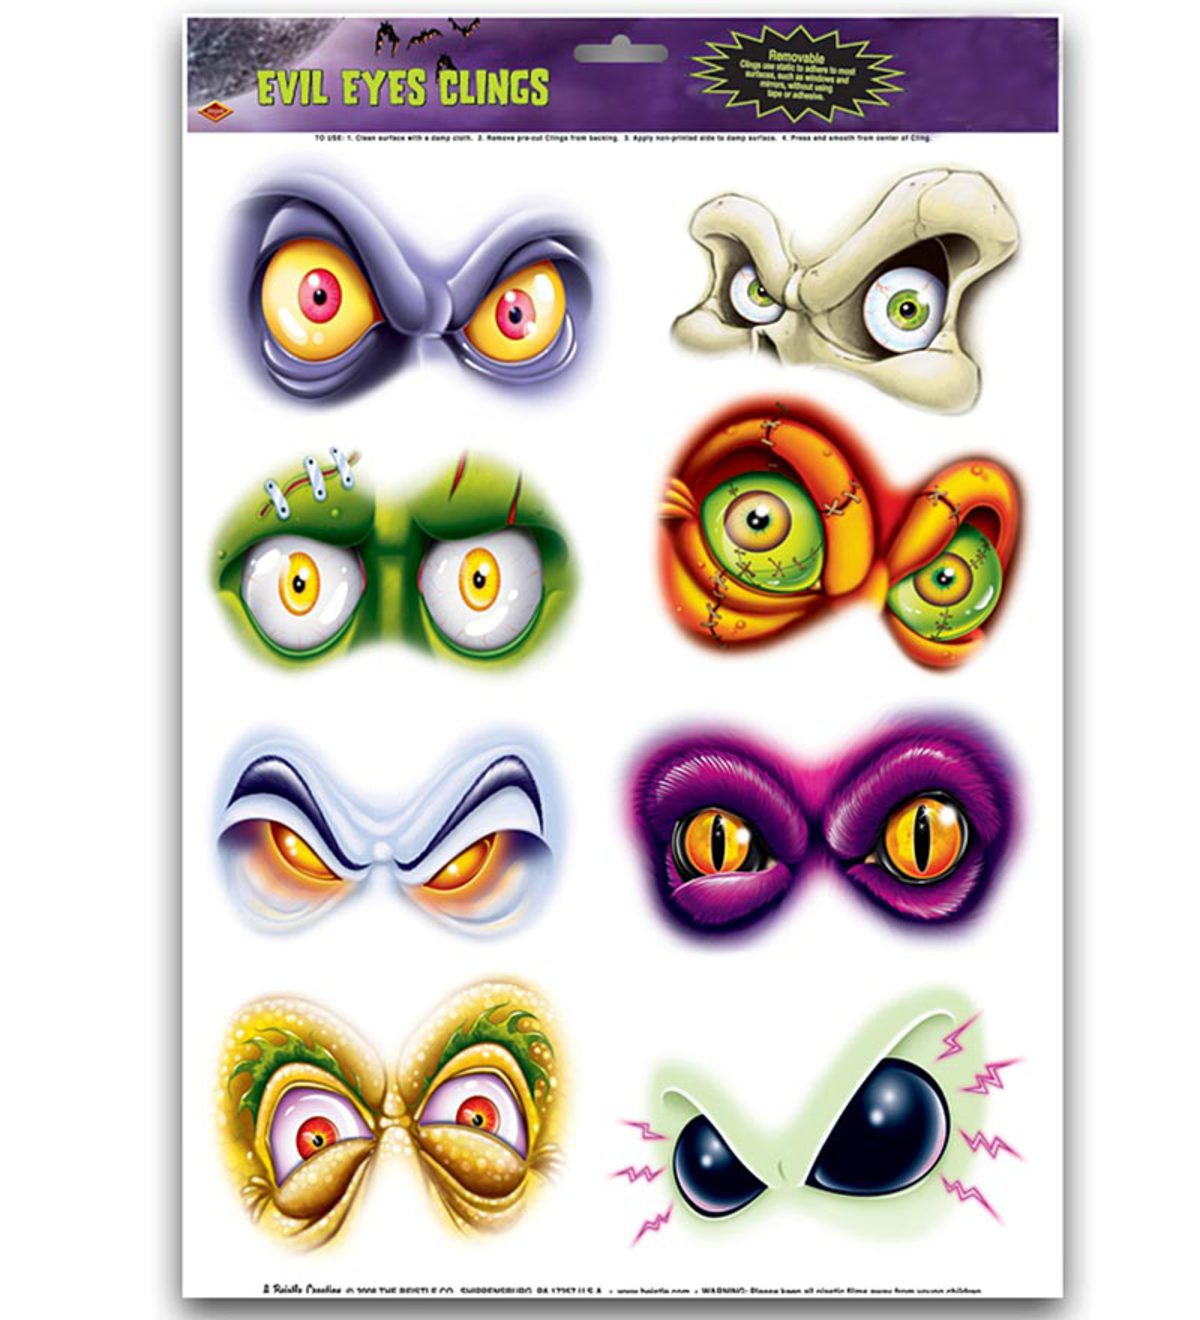 Creepy Eye Clings Halloween Decorations, set of 16